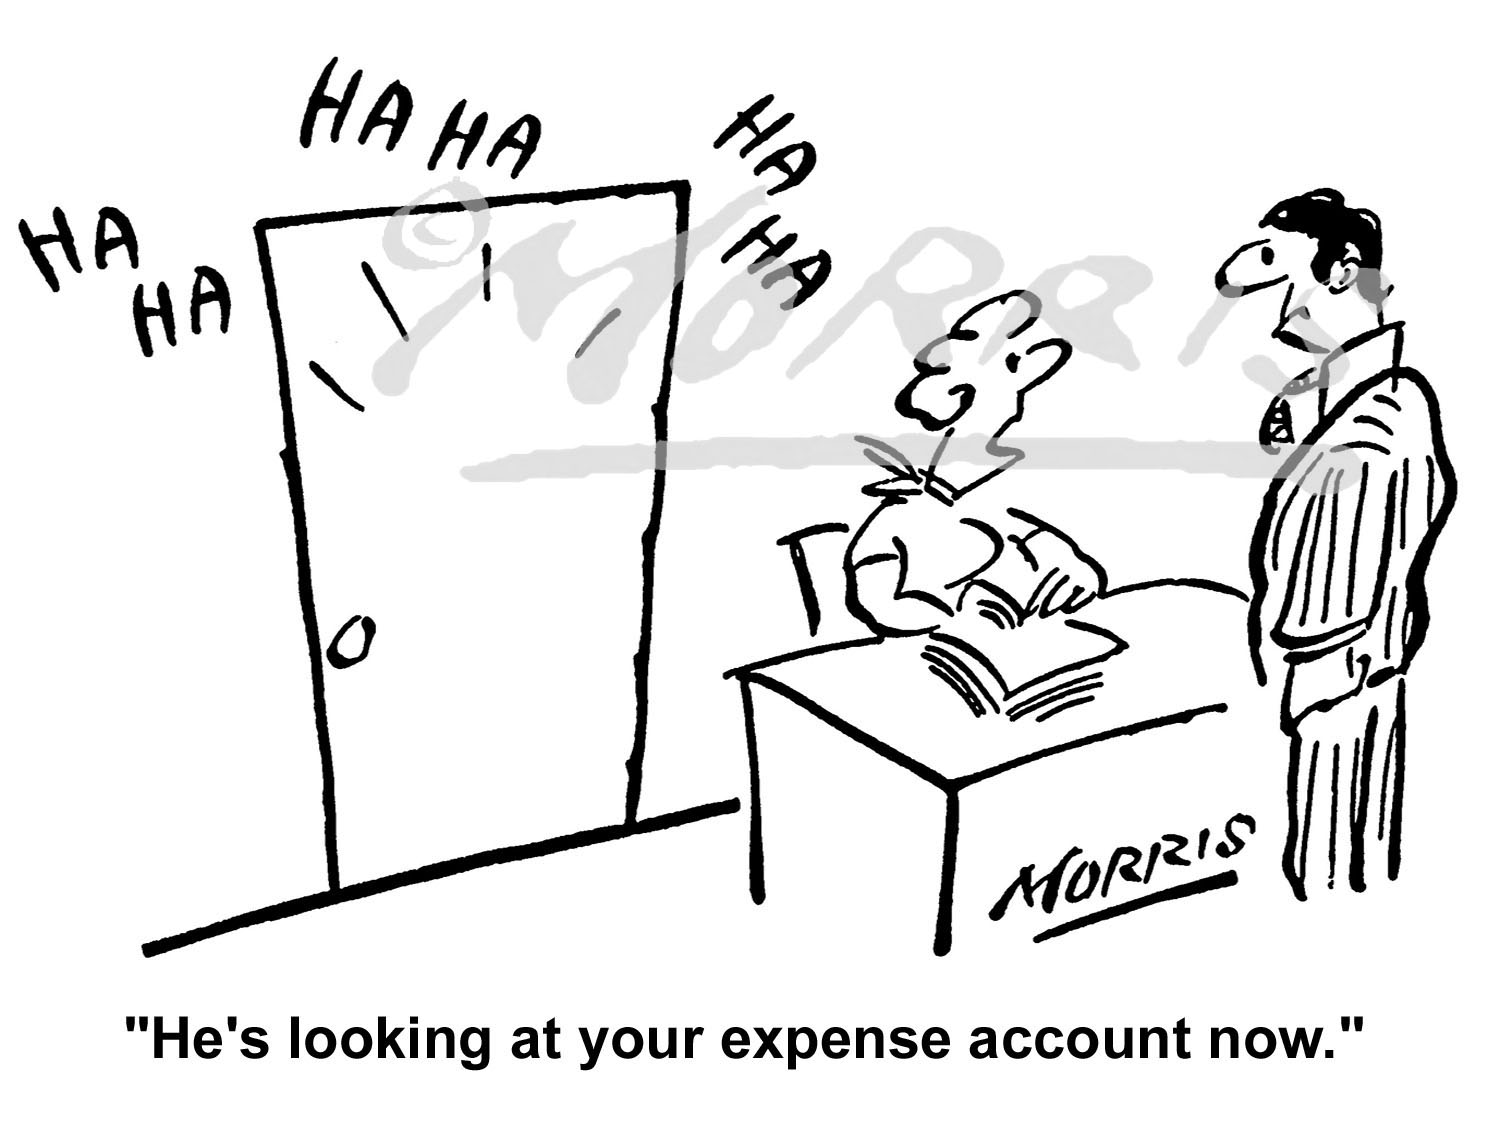 Expense account cartoon – Ref: 0662bw